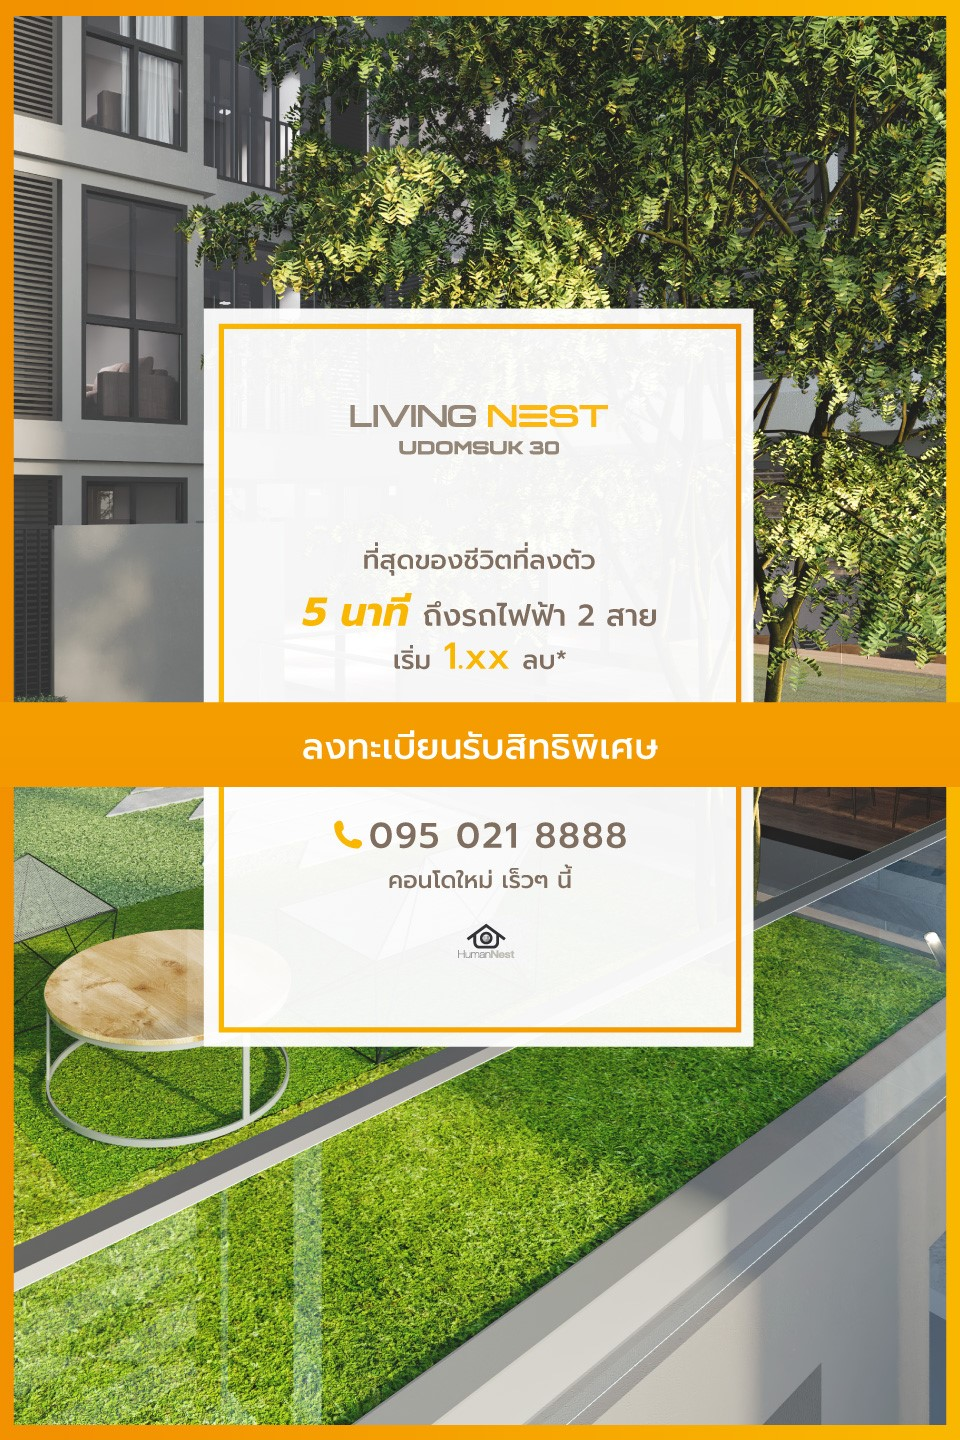 Living Nest Udomsuk 30